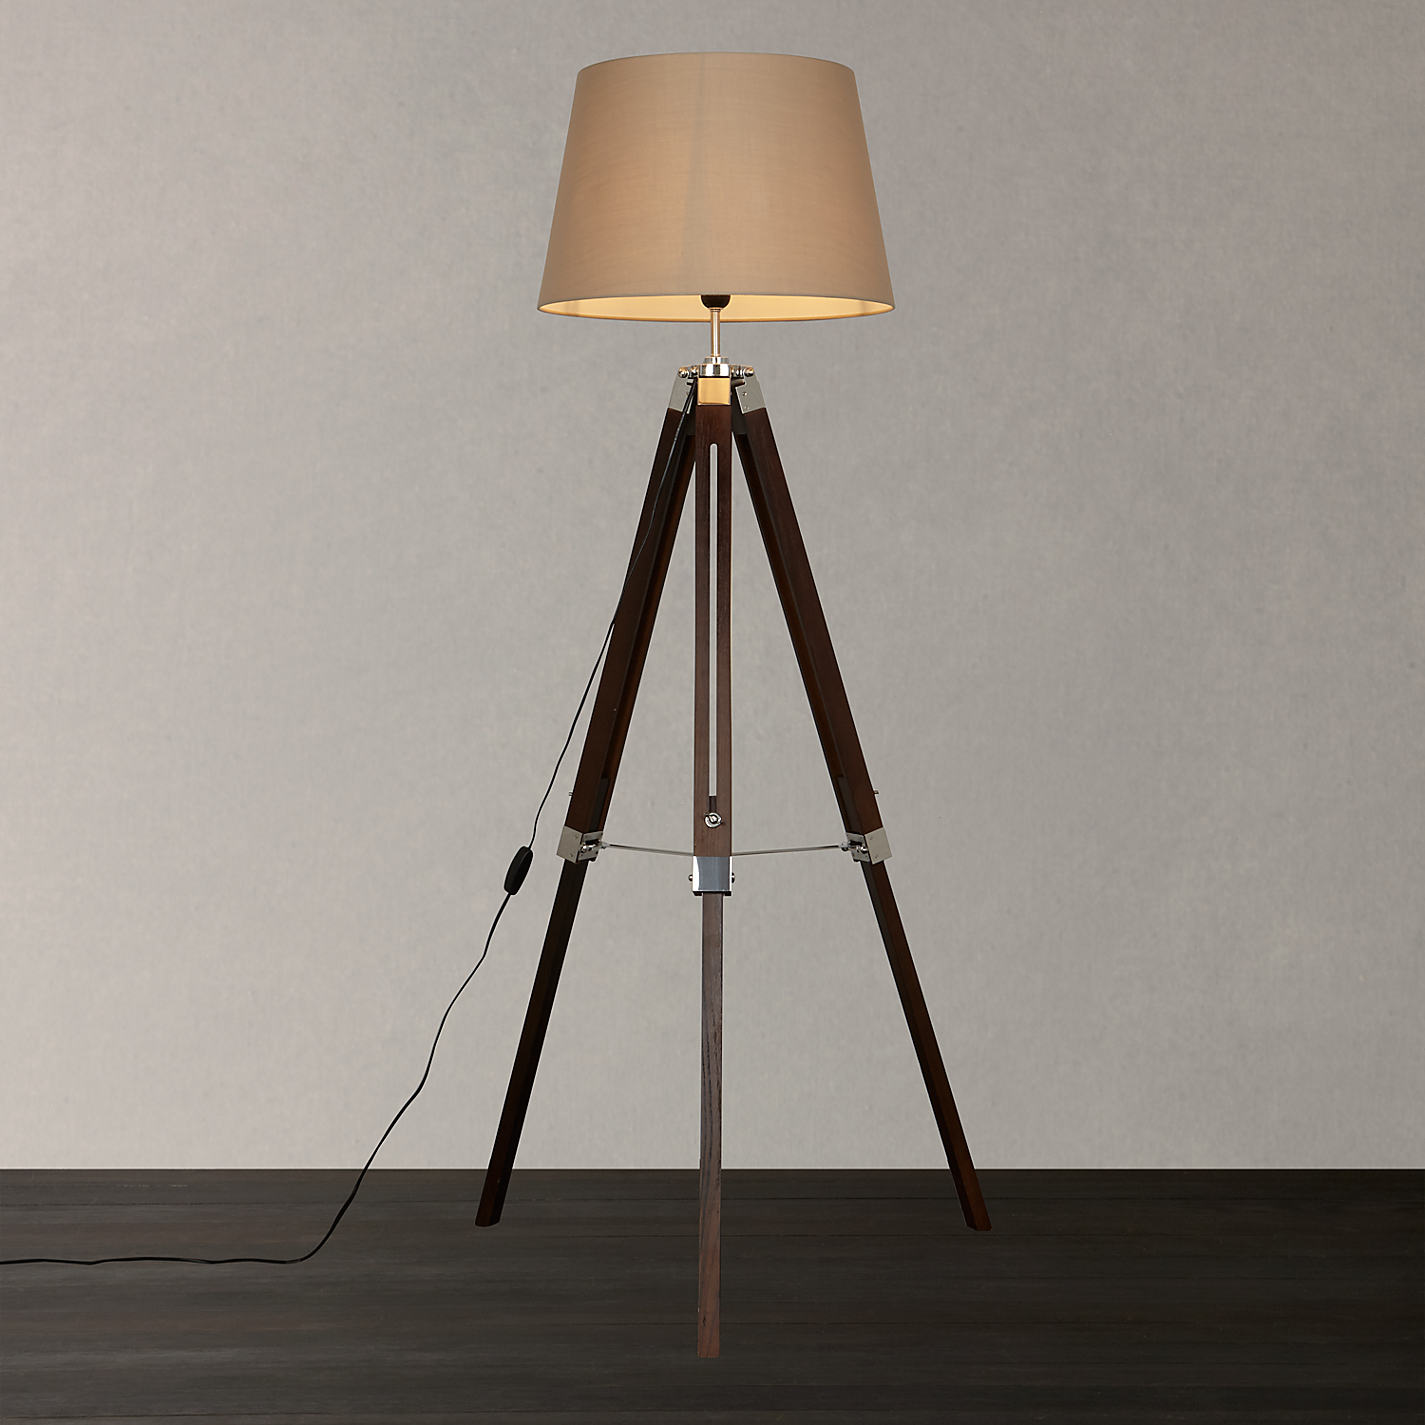 Crate and Barrel Arc Lamp | Tripod Lamp | Cheap Tripod Floor Lamp